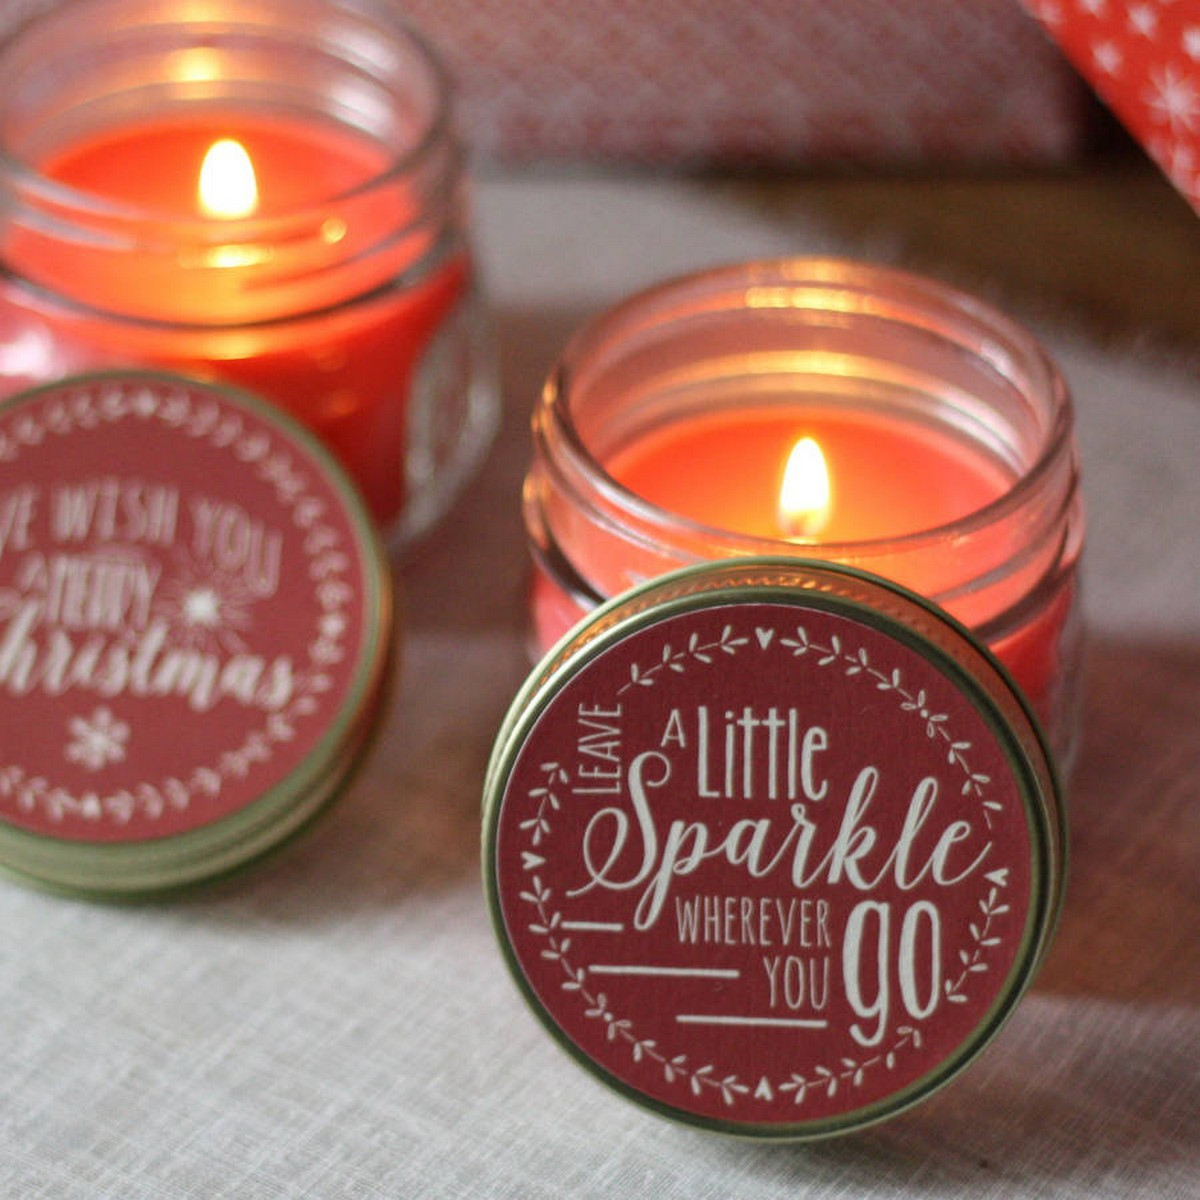 And while it's always nice to find a pretty candle to evoke that holiday spirit, why not pick one that will also bring back all the nostalgic memories of Christmases past?